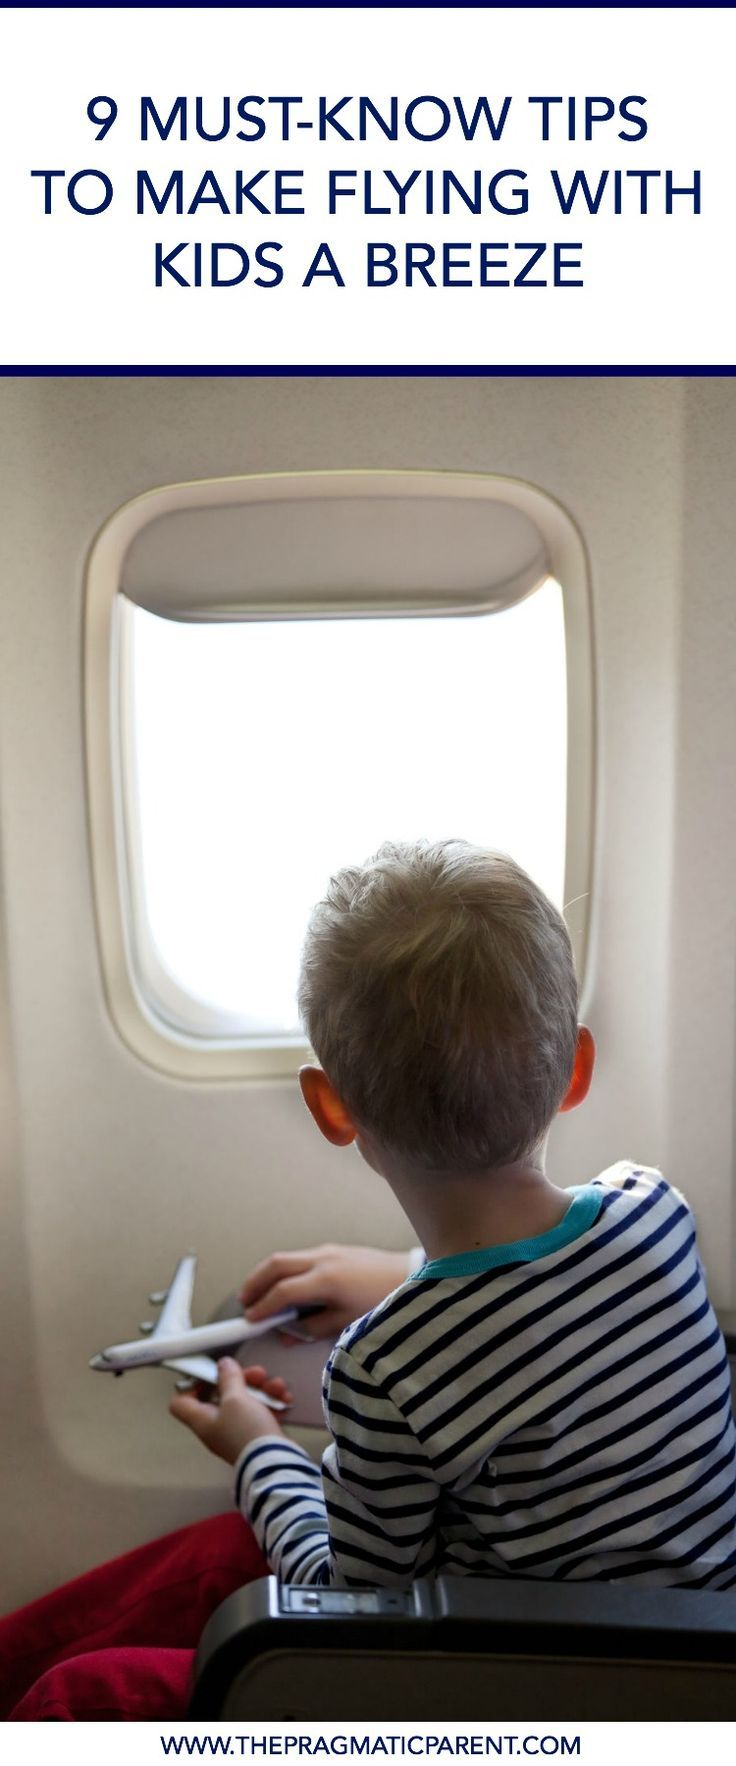 You won't have to worry about flying with kids once you know these 9 Golden Rules. Prepare ahead of time and make the flight a breeze!